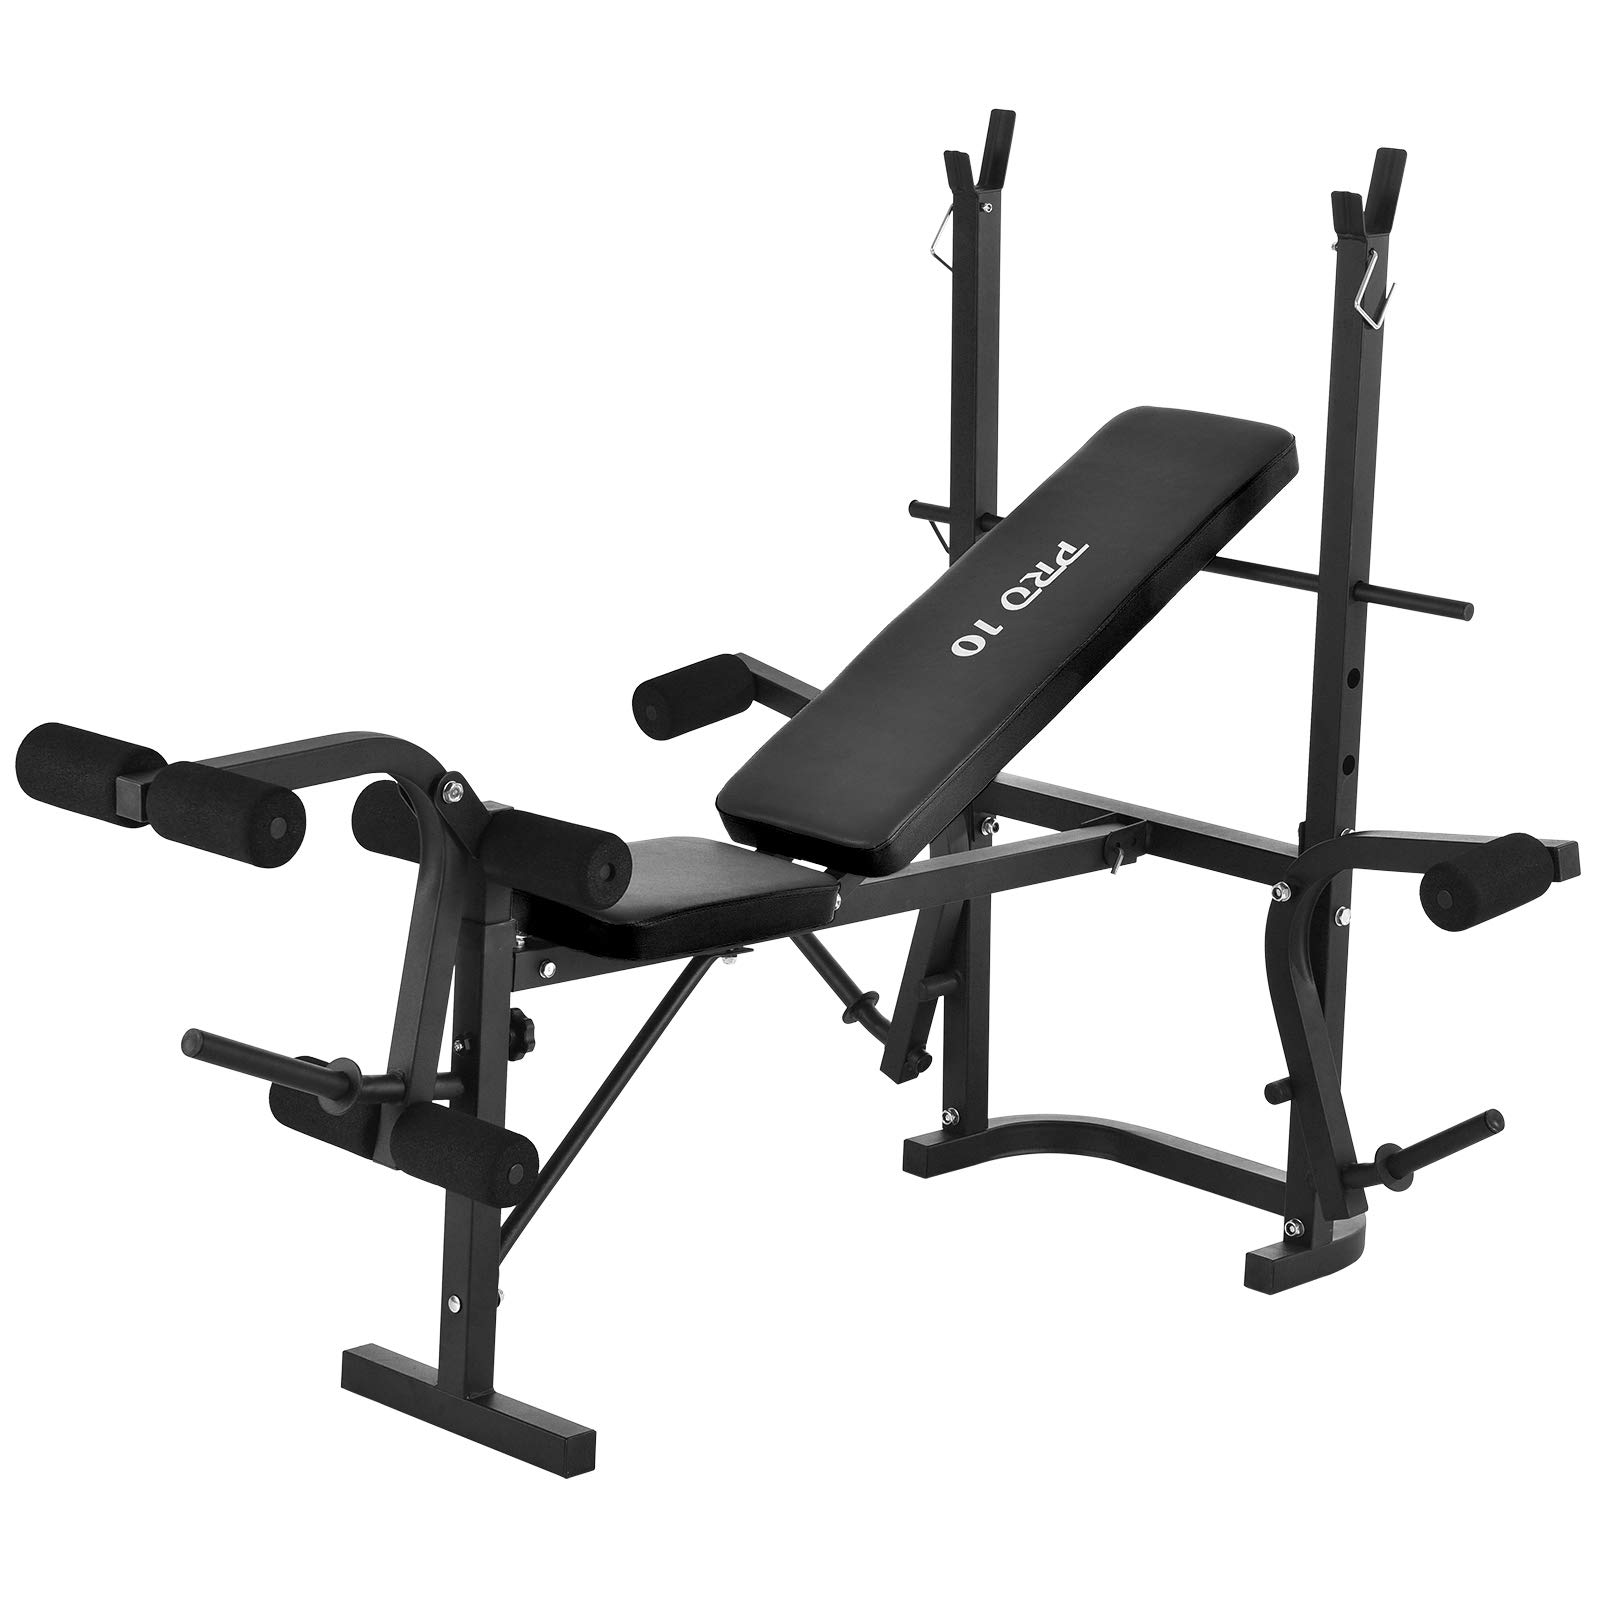 Murtisol Foldable Weight Bench Workout Gym Bench with Leg Extension and Leg Curl,Leg Developer,Crunch Handle,Adjustable Backrest,Black